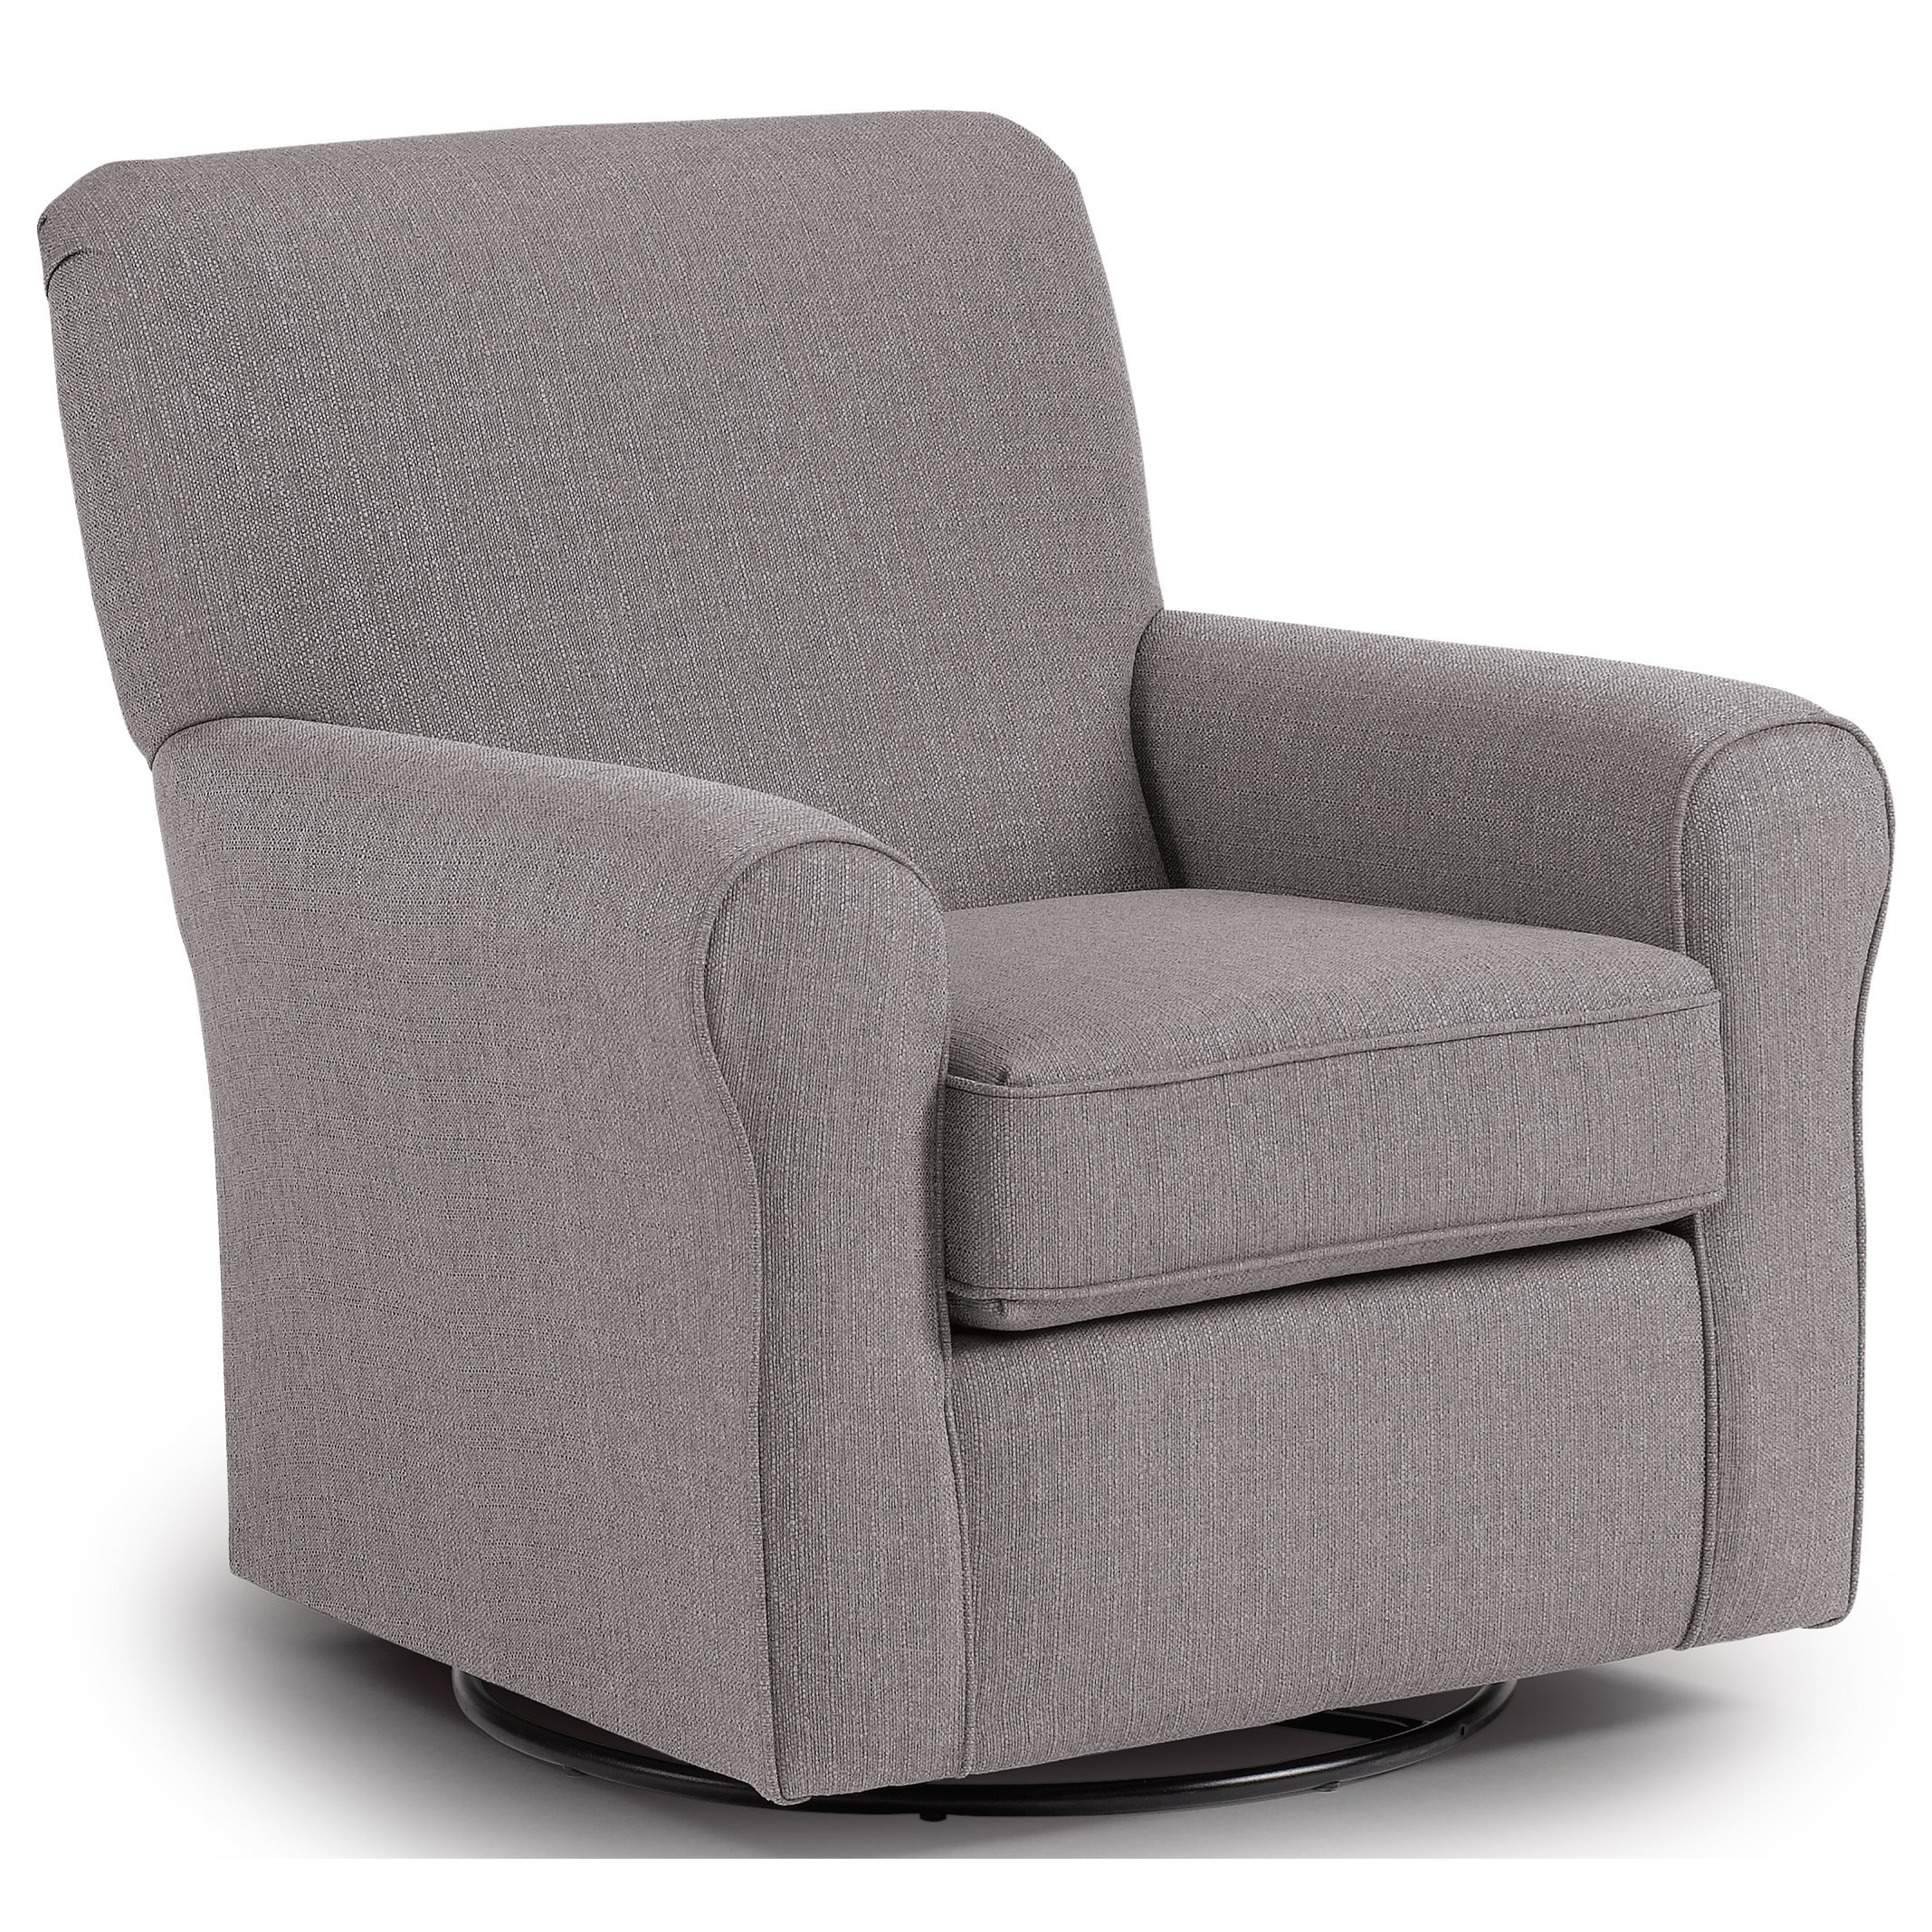 Swivel Glide Chairs Hagen Swivel Glide by Best Home Furnishings at Baer's Furniture